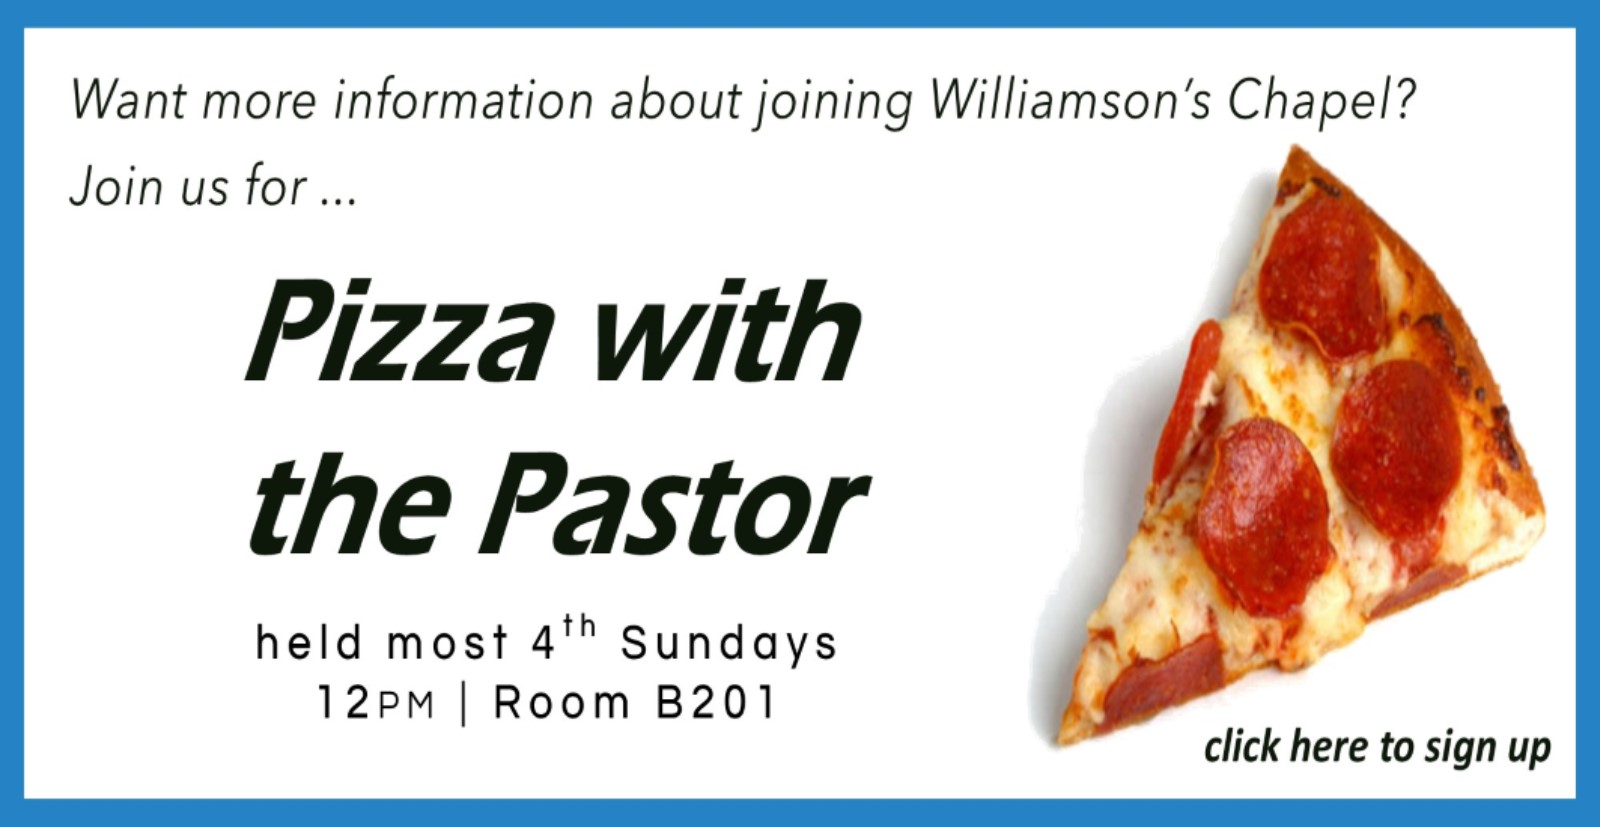 pizza-with-the-pastor-image.jpg